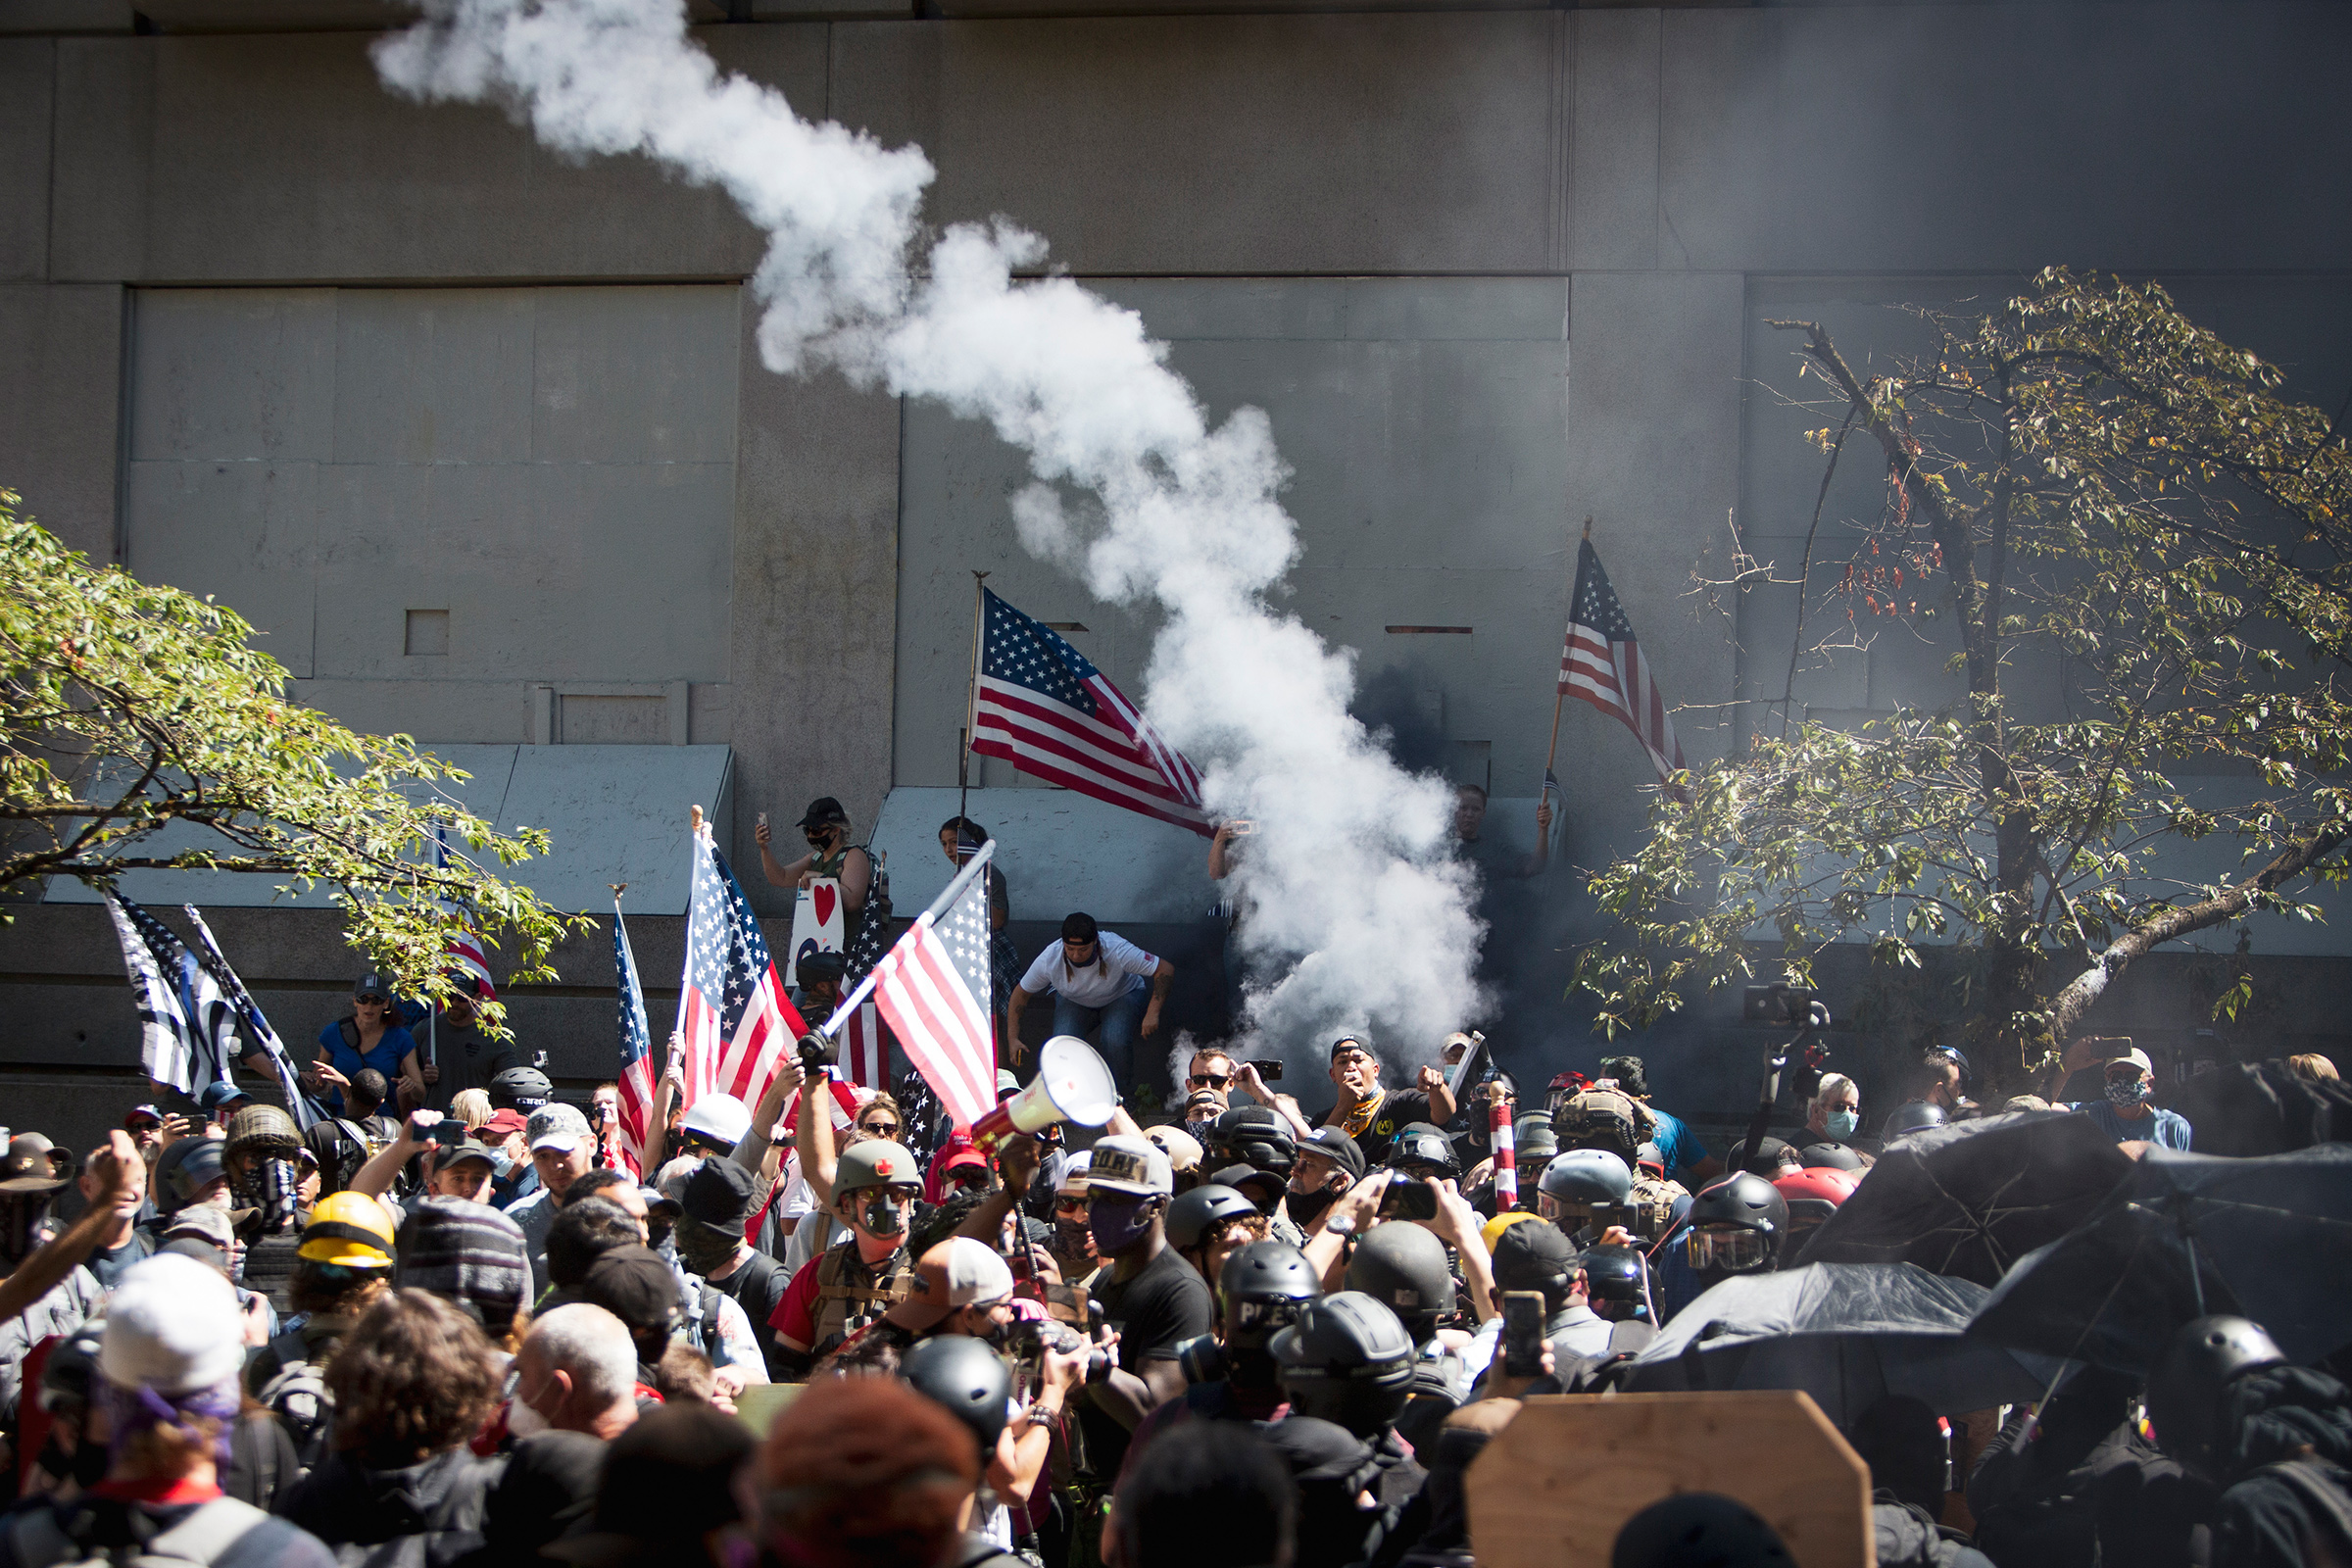 Far-right protesters clash with left-wing counterprotesters at the Justice Center in Portland, Ore., on Aug.22